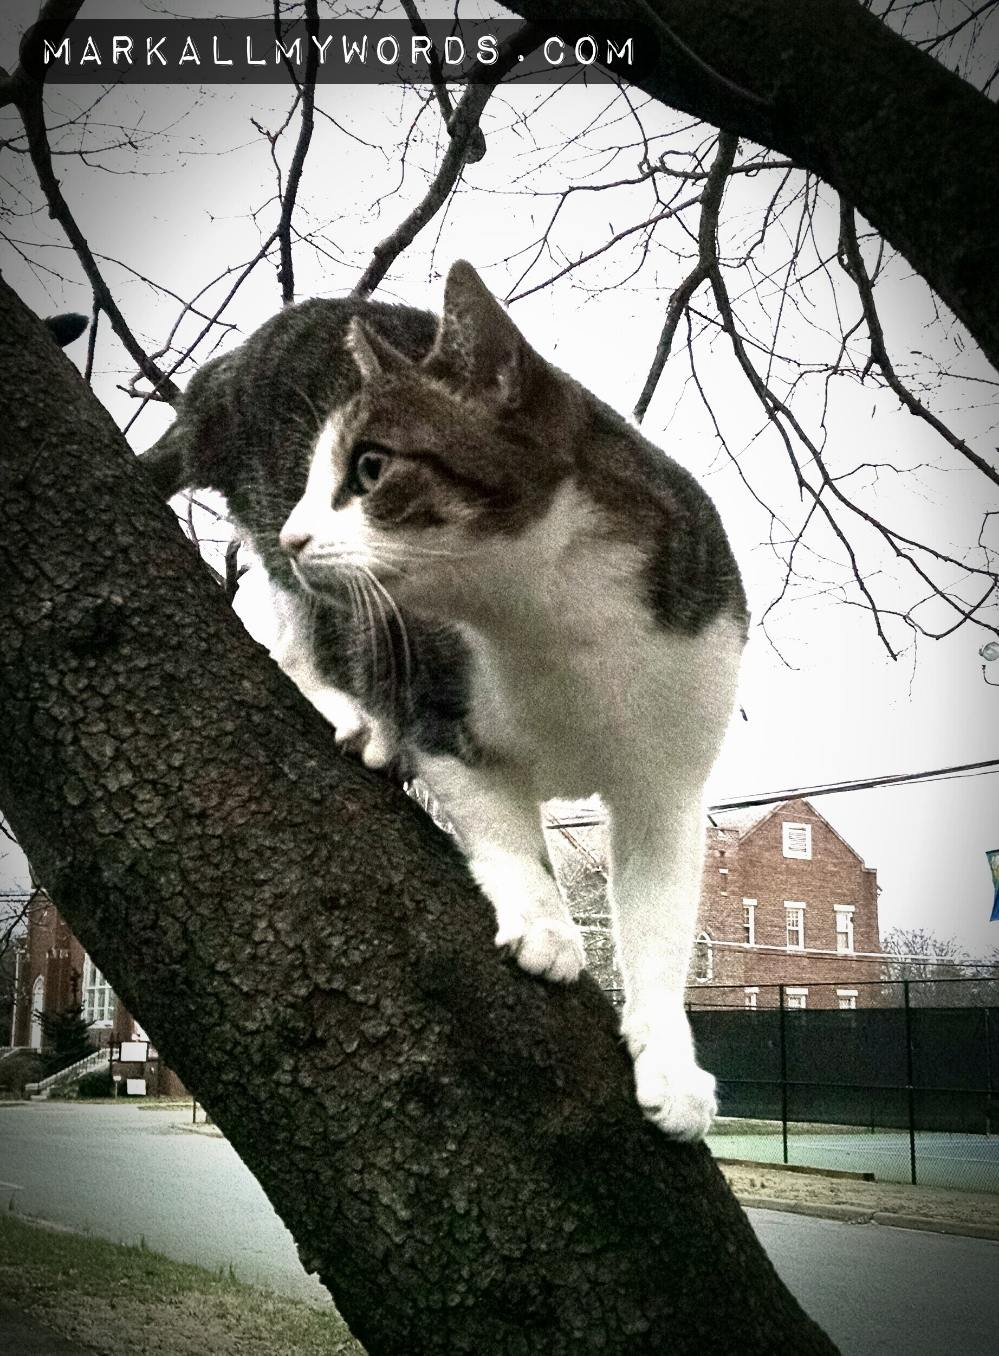 White and gray cat in branches of a tree